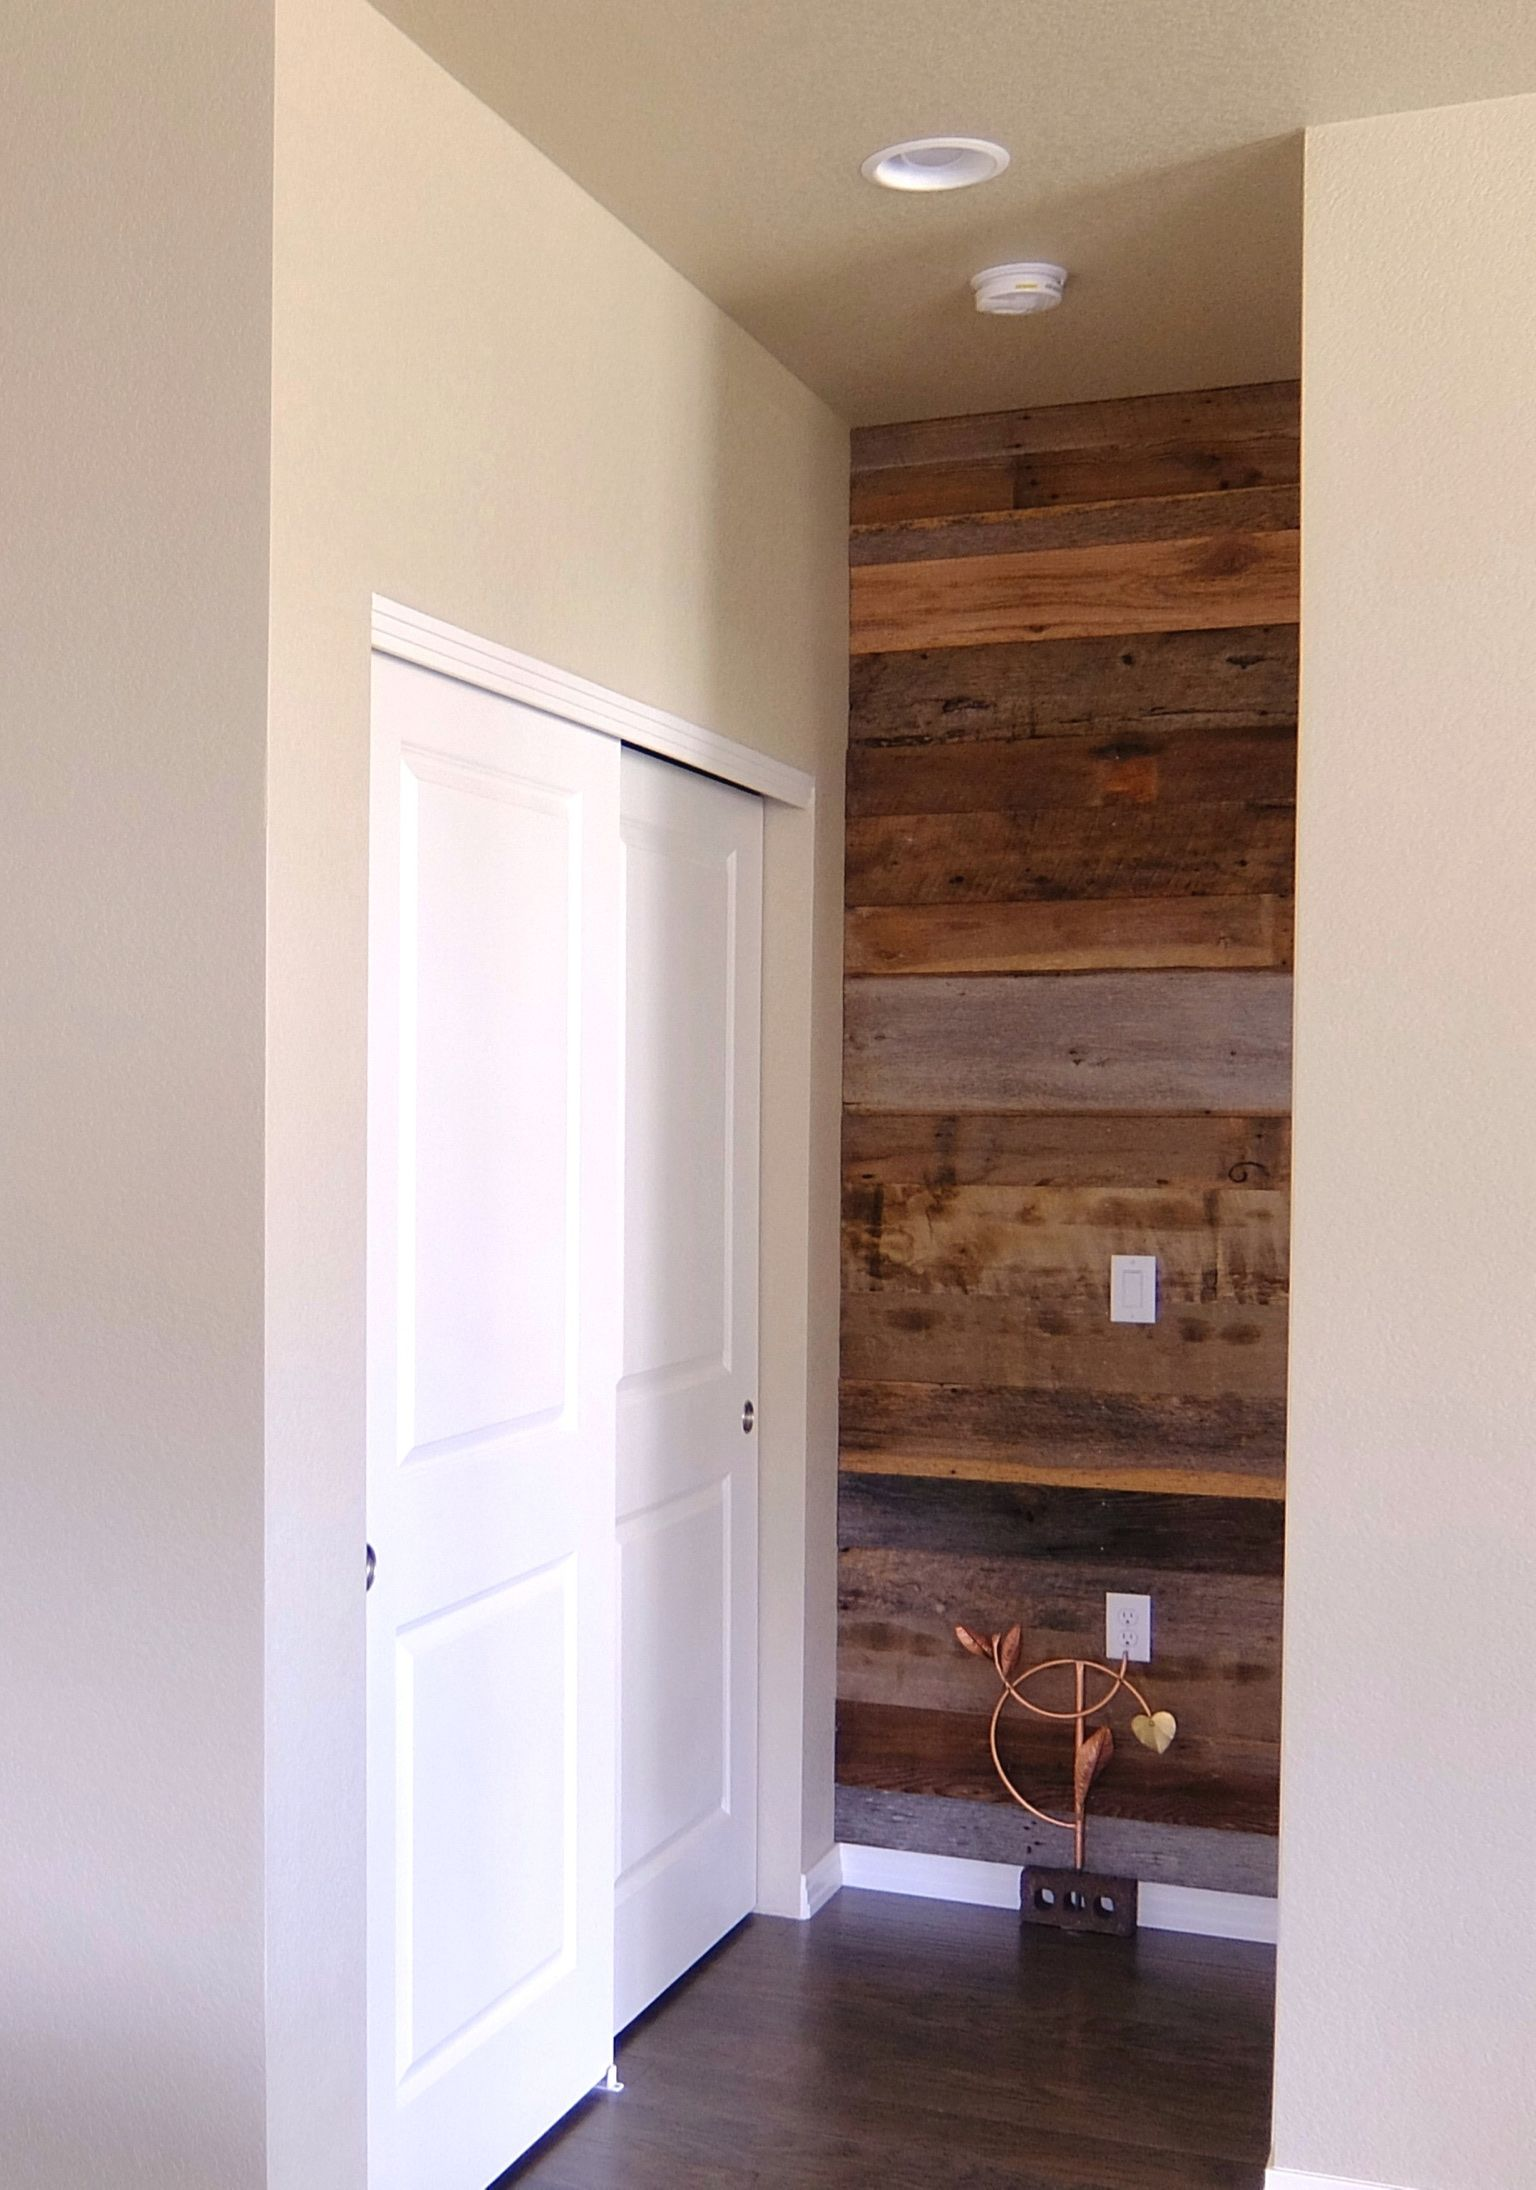 22 Ways To Boost And Refresh Your Bathroom By Adding Wood Accents: Thank You To Judy J. For Sharing This Photo Of Your Small Wood Accent Wall With Reclaimed Wood